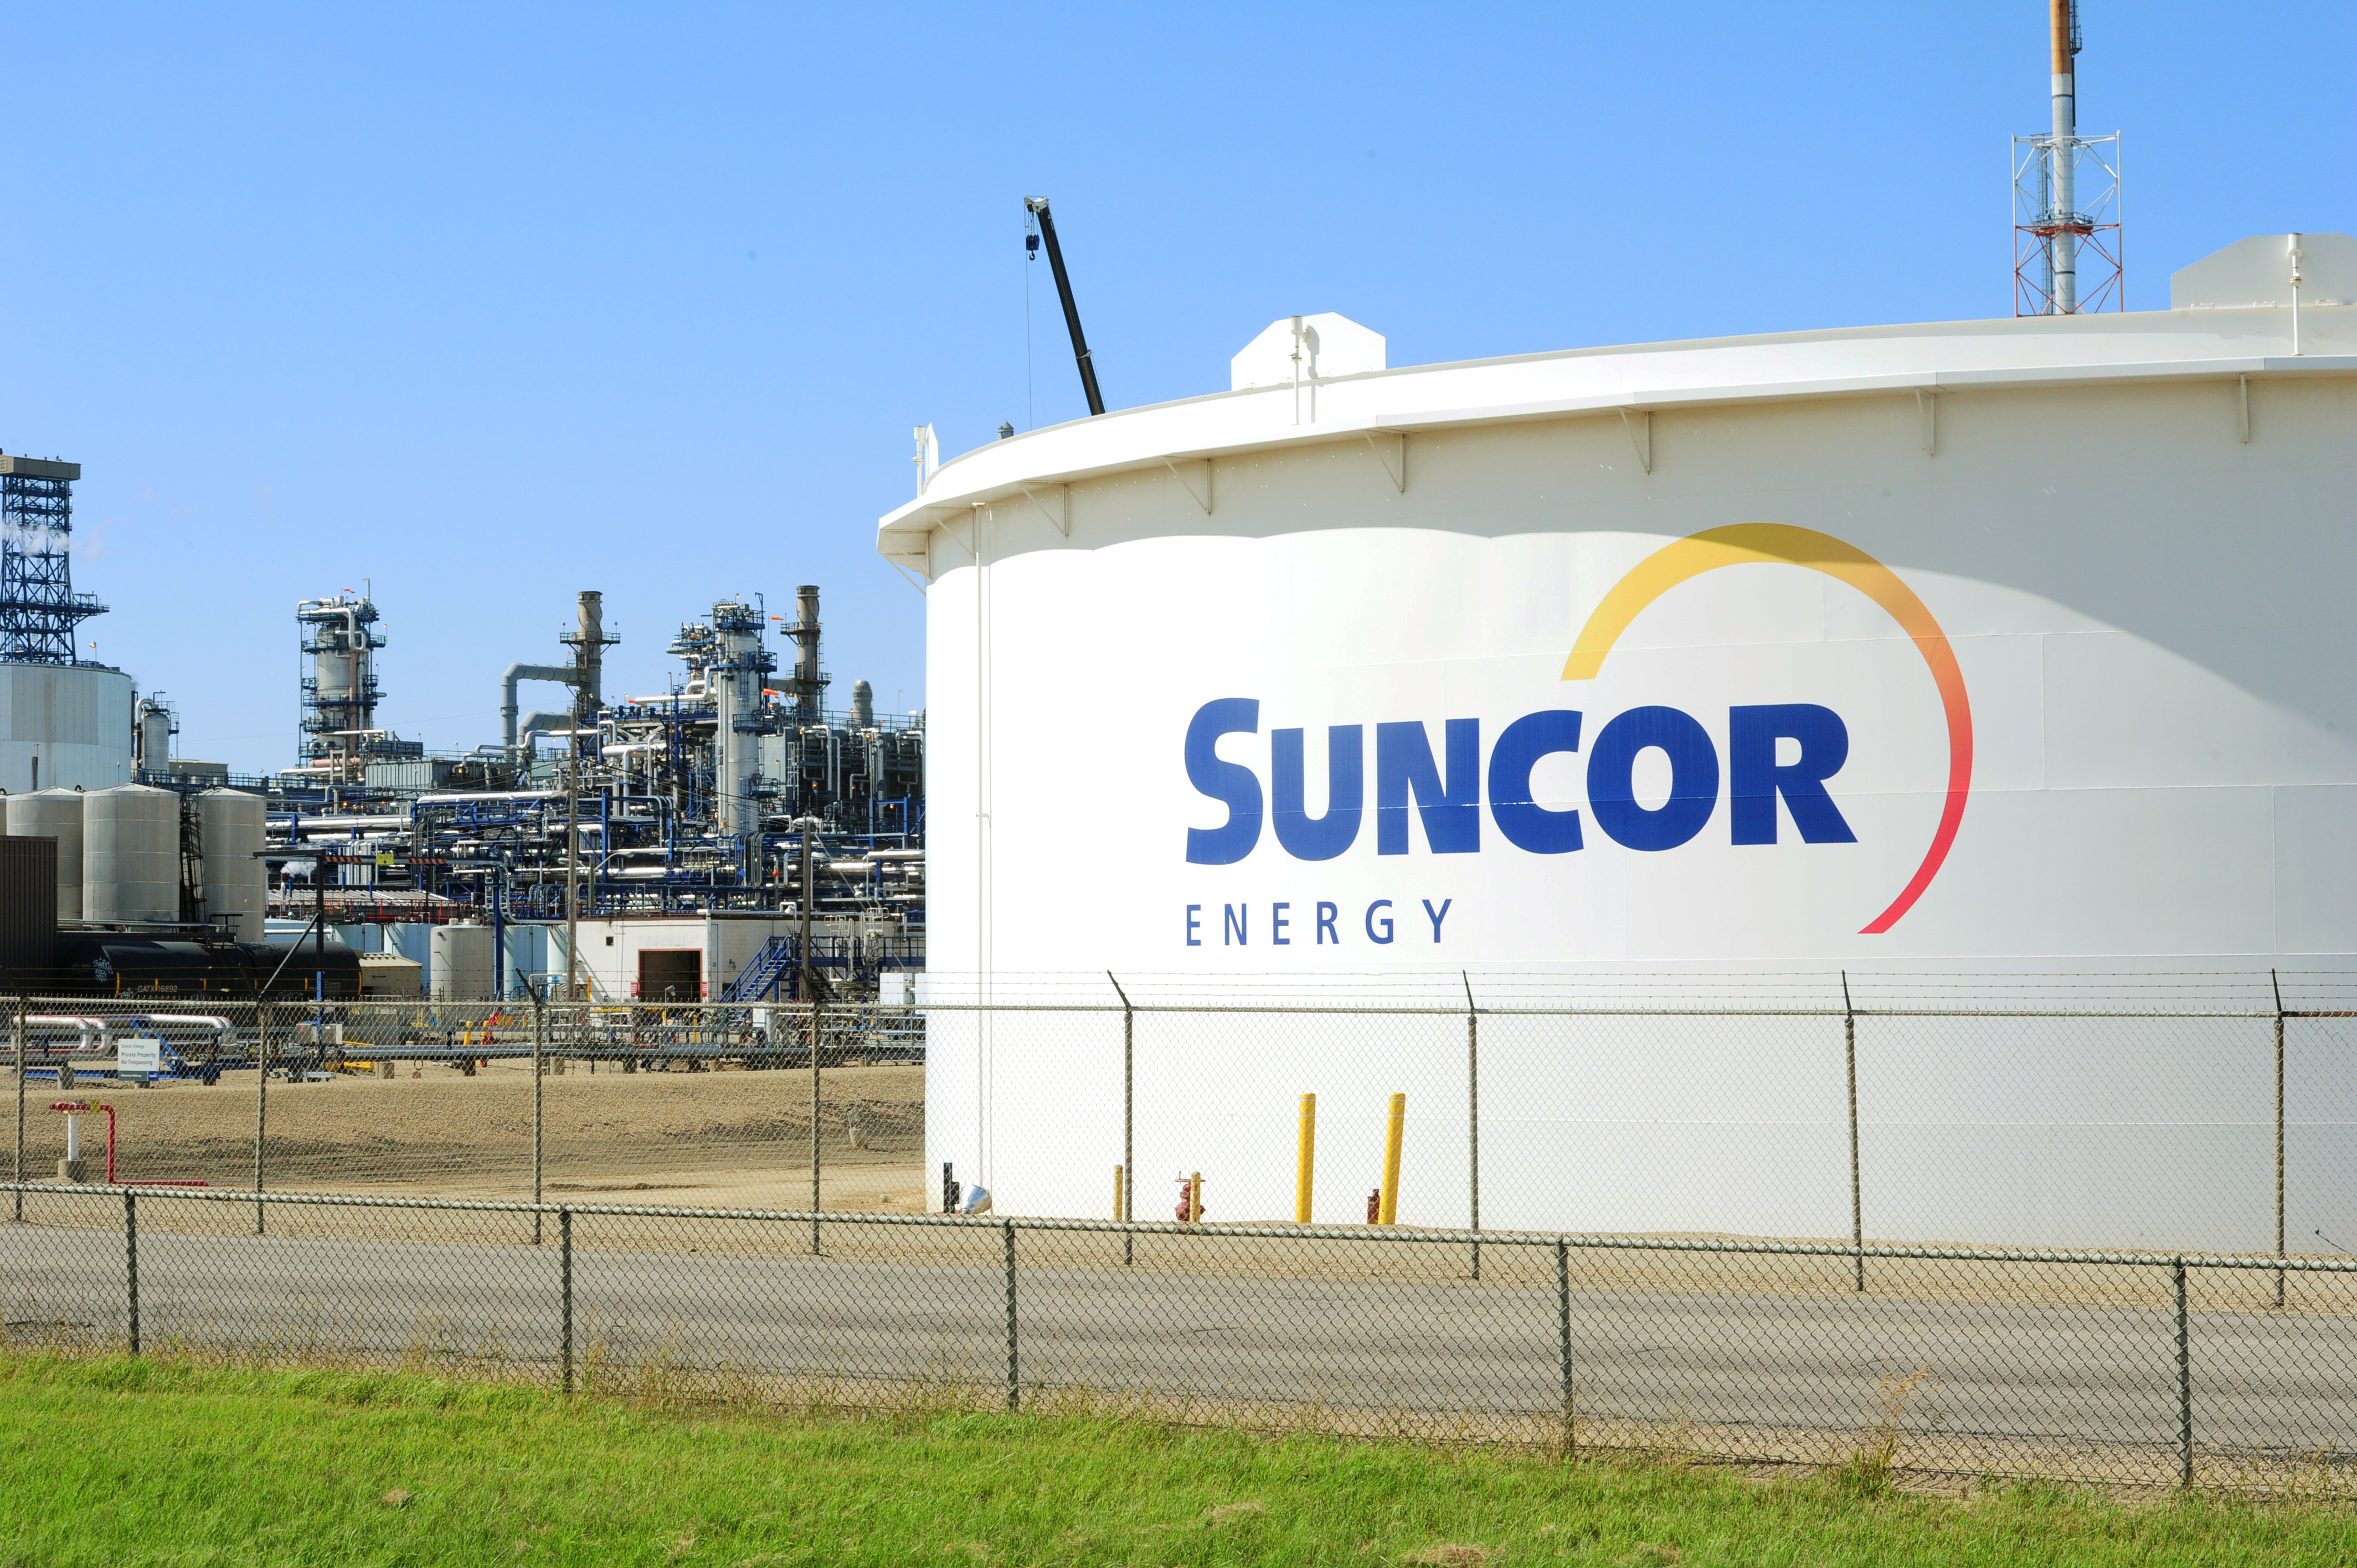 Suncor Energy facility is seen in Sherwood Park, Alberta, Canada August 21, 2019. REUTERS/Candace Elliott/File Photo